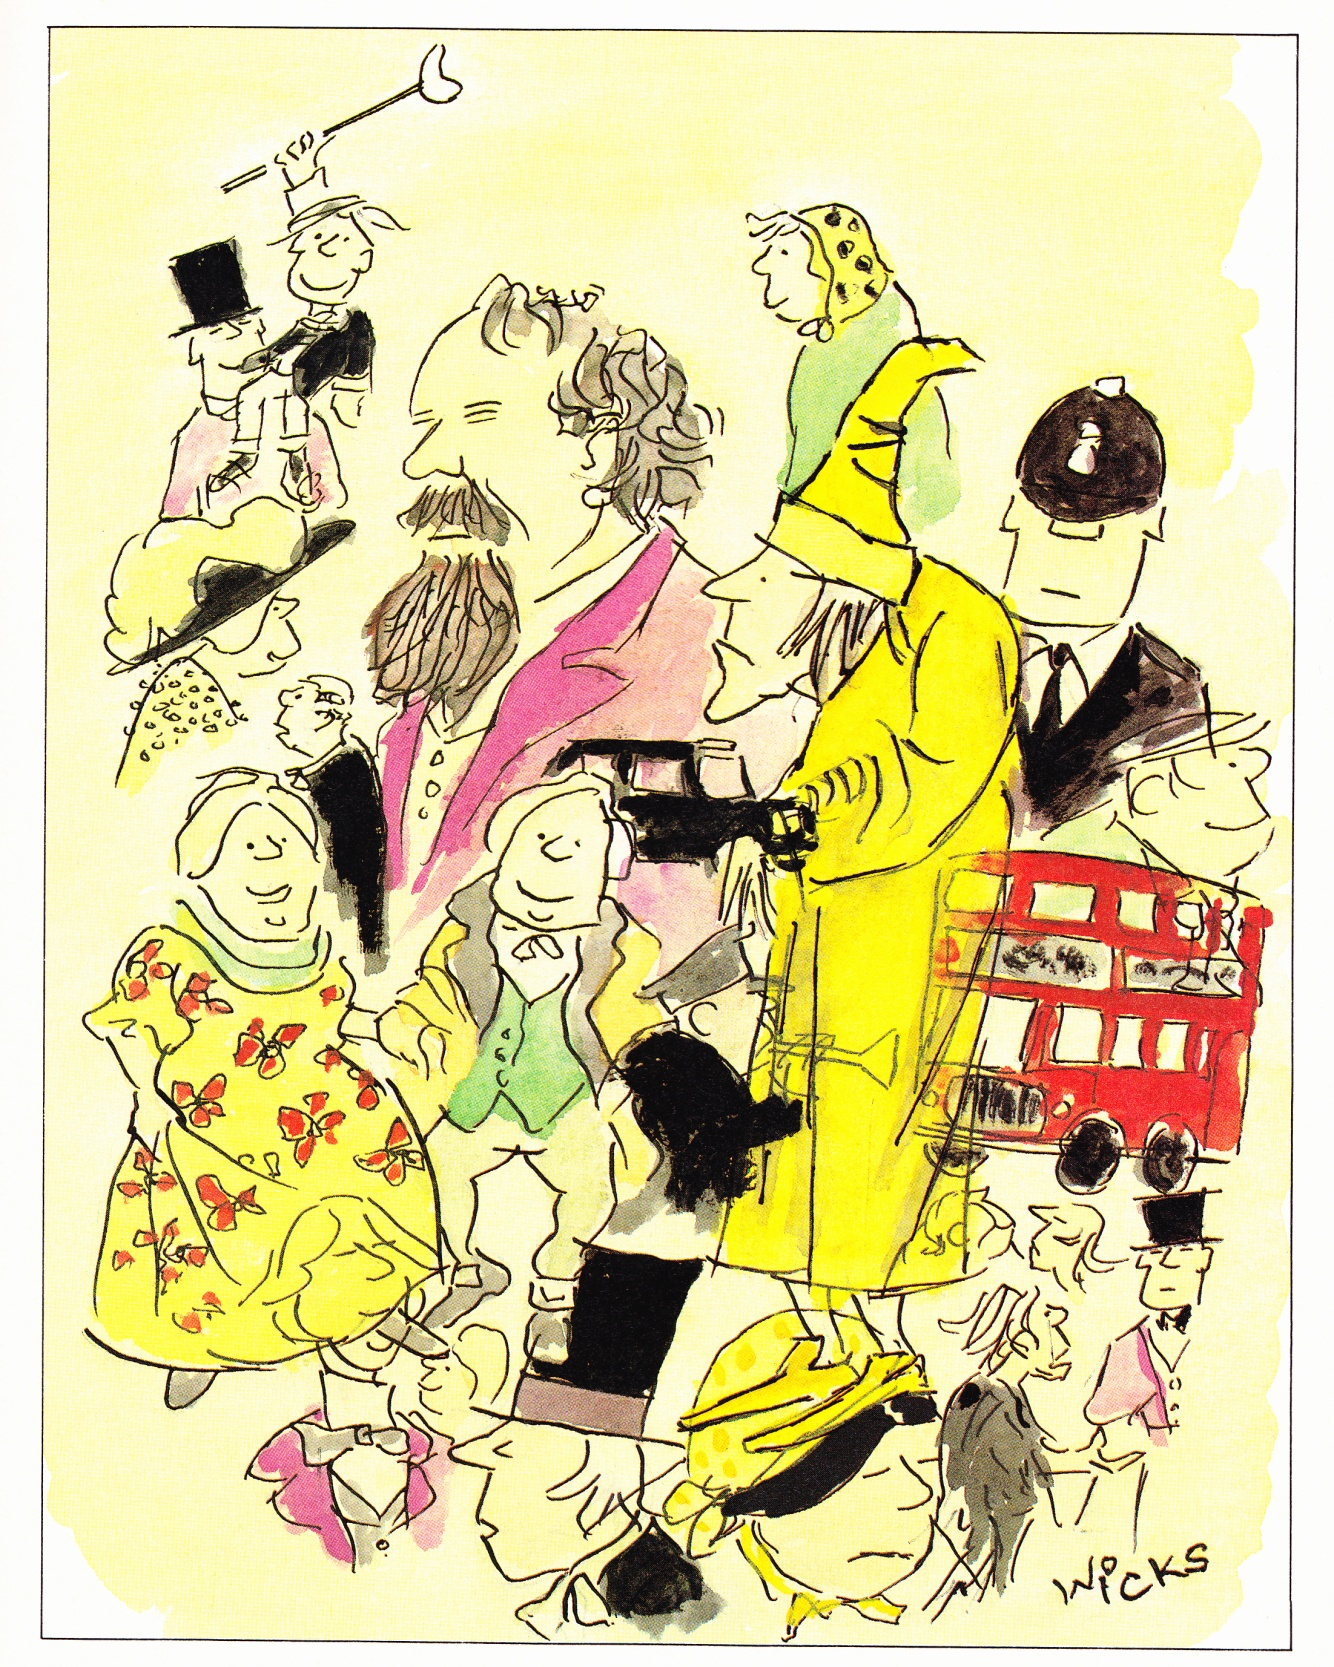 C:\Users\Robert\Documents\CANADIAN CARTOONING ILLUSTRATION and ANIMATION\IMAGE BY CARTOONIST OR ILLUS. W\WICKS BEN, Touring & Travel, Dec 1983, 7 .jpg